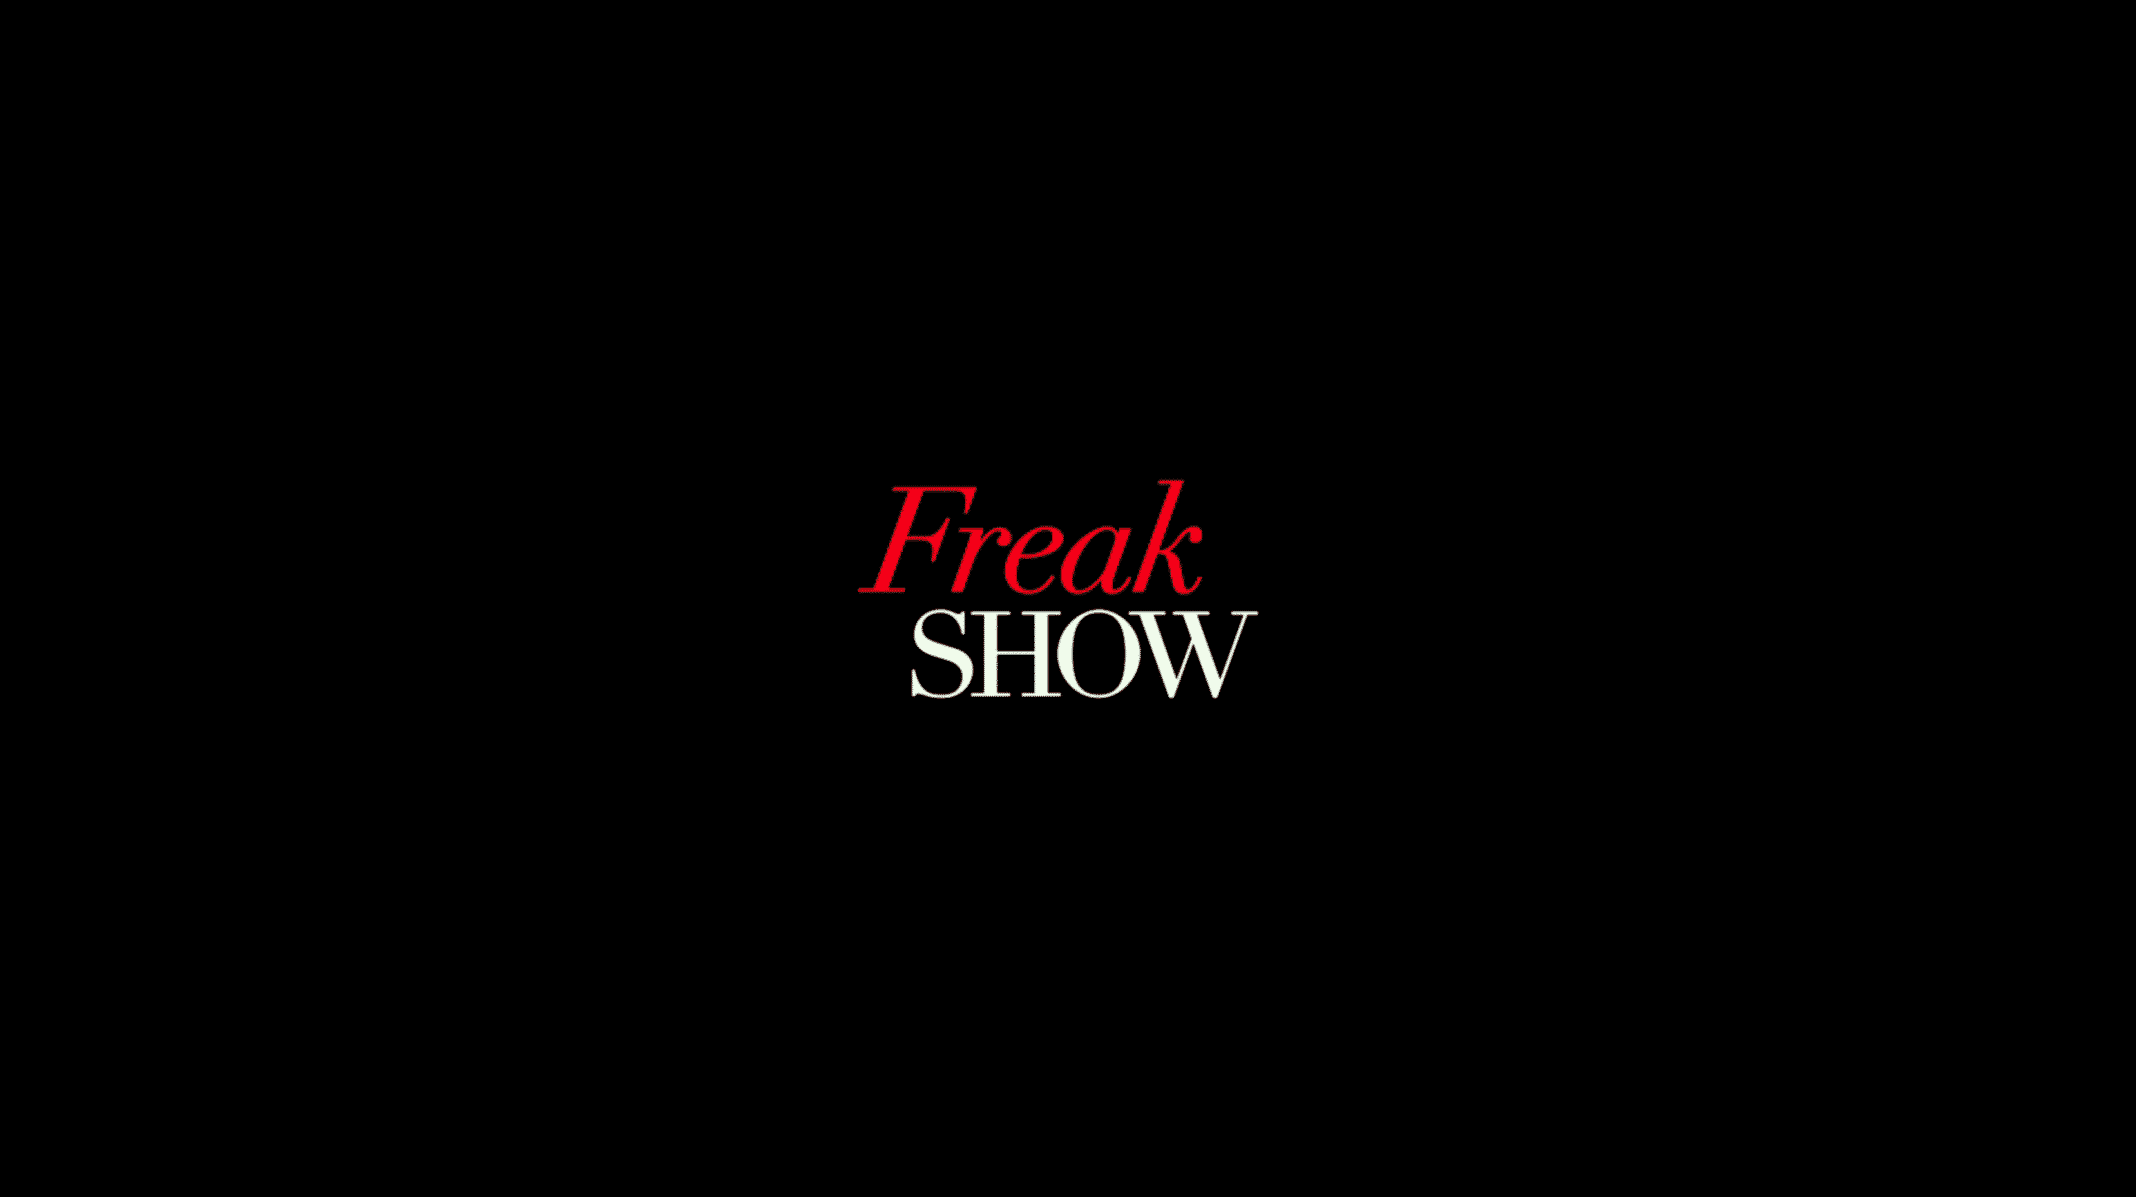 The Title Card for Freak Show